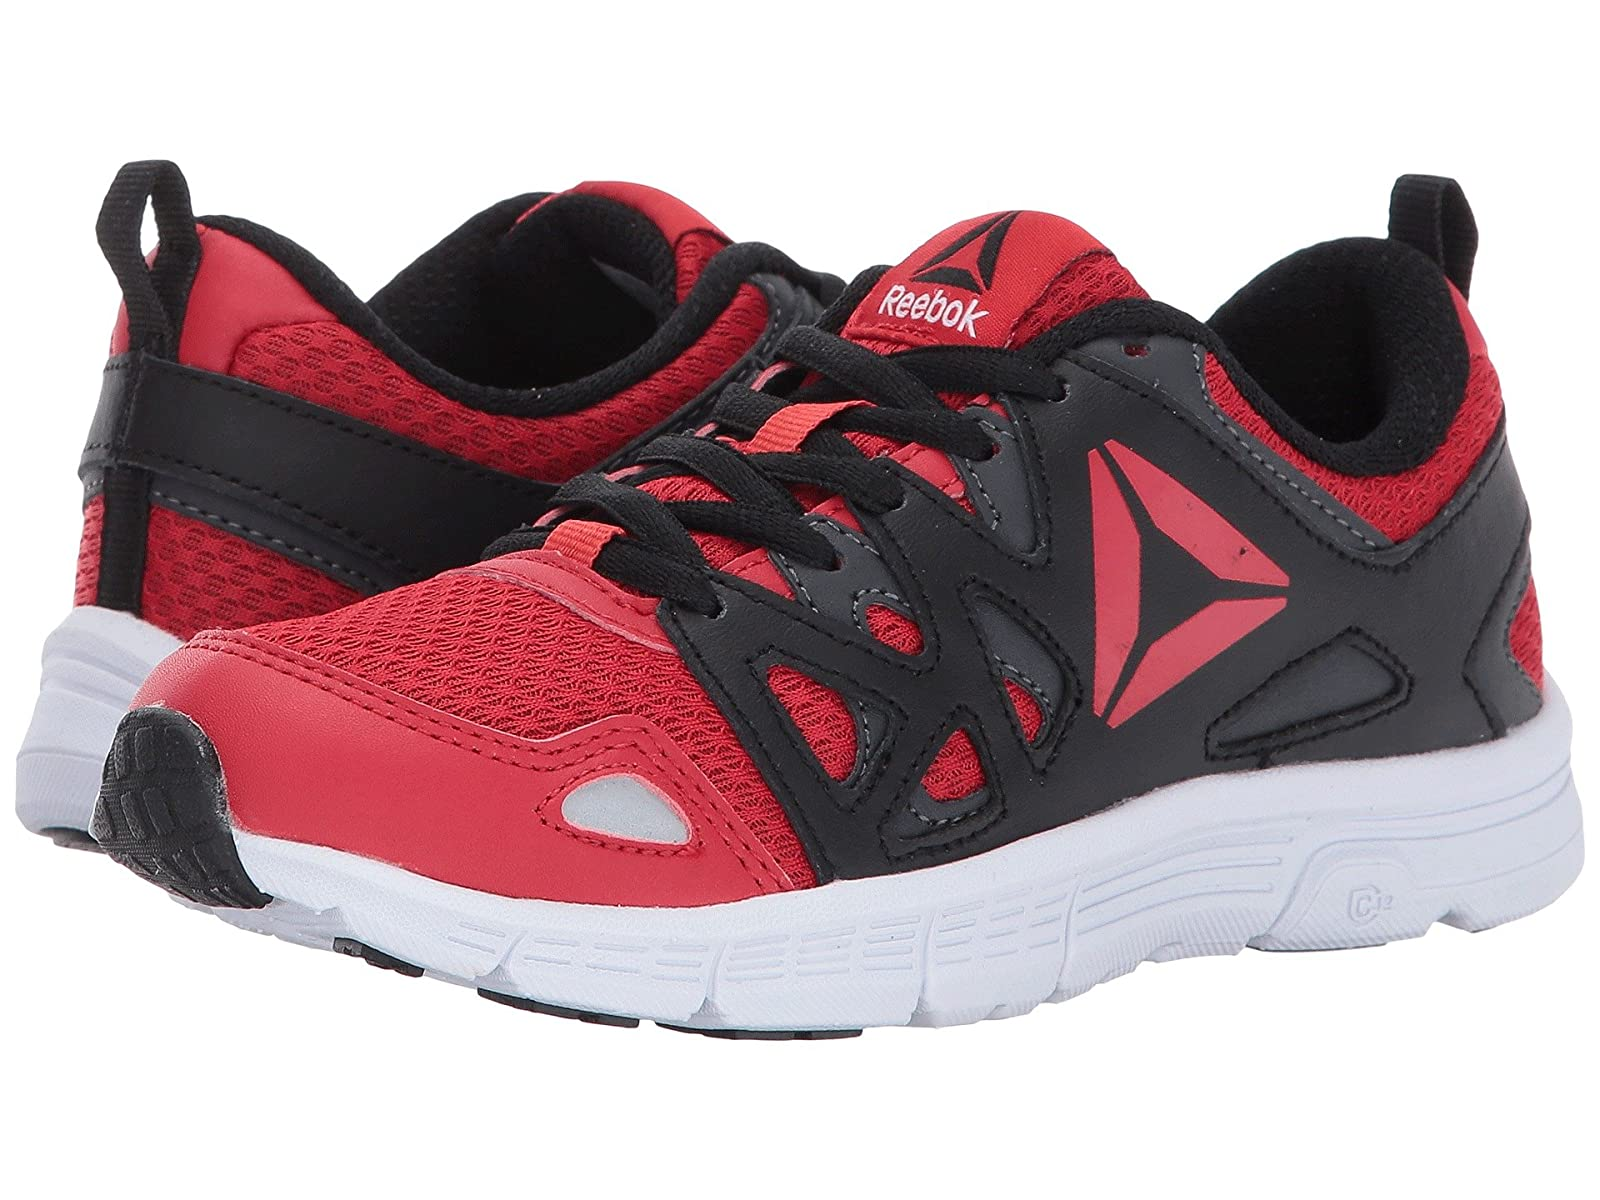 Reebok Kids Run Supreme 3.0 (Little Kid/Big Kid)Cheap and distinctive eye-catching shoes